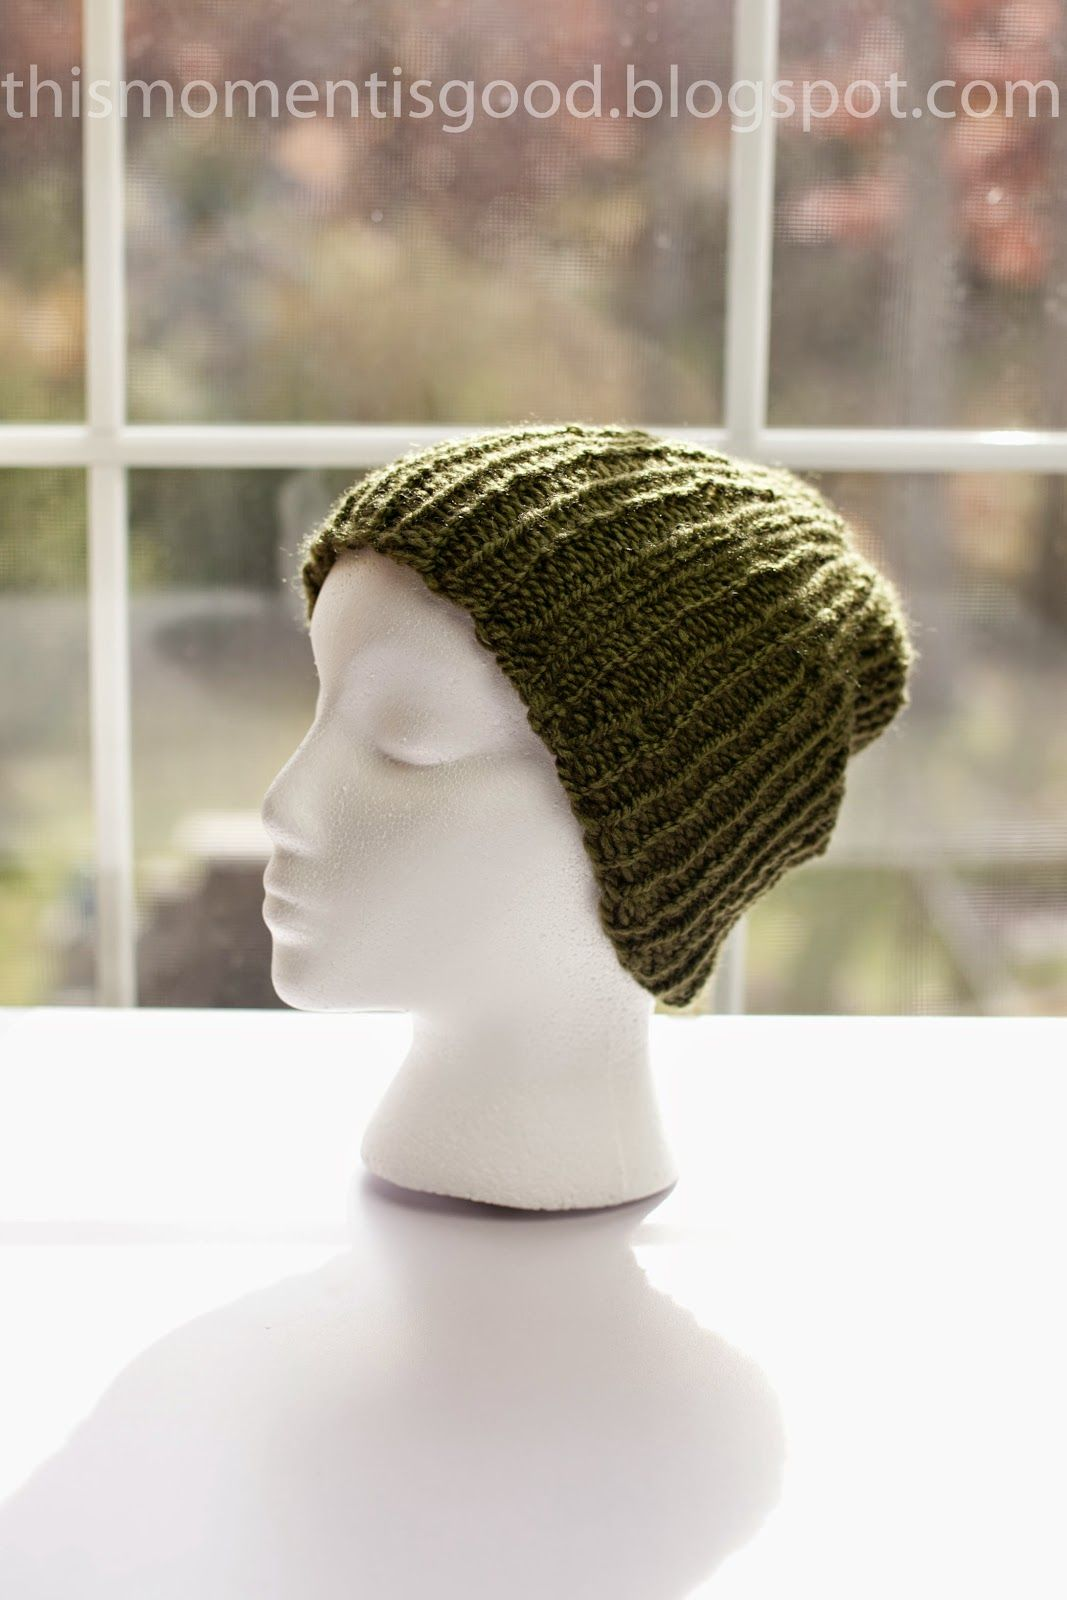 This Moment is Good...: LOOM KNIT MEN\'S RIBBED BEANIE... | Knit Loom ...